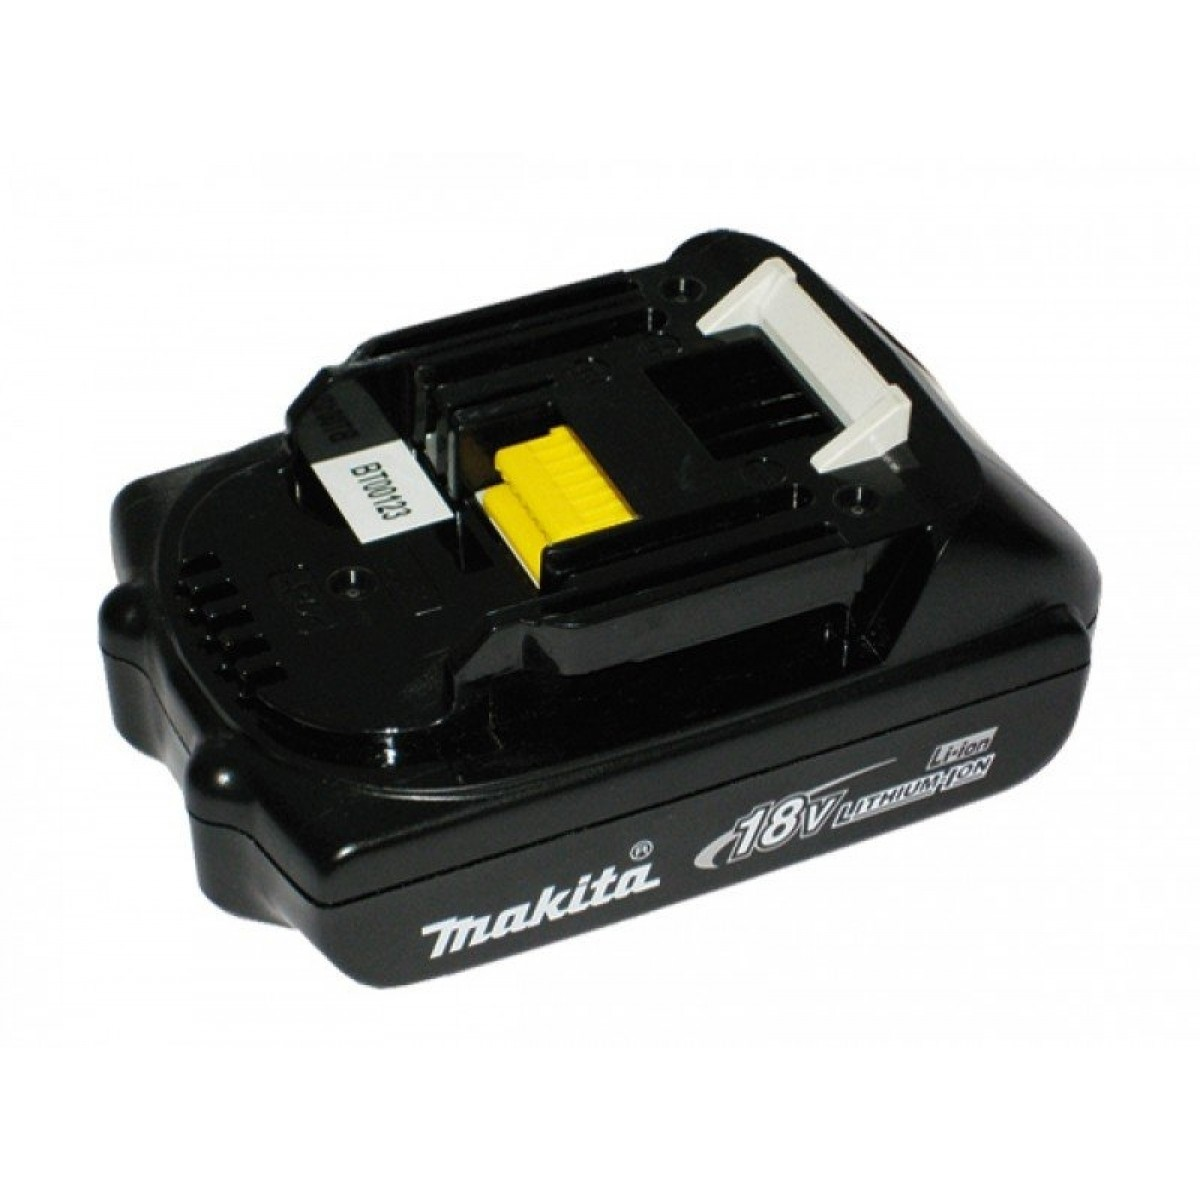 Makita Li-ion 18V batteri 1,3Ah-31